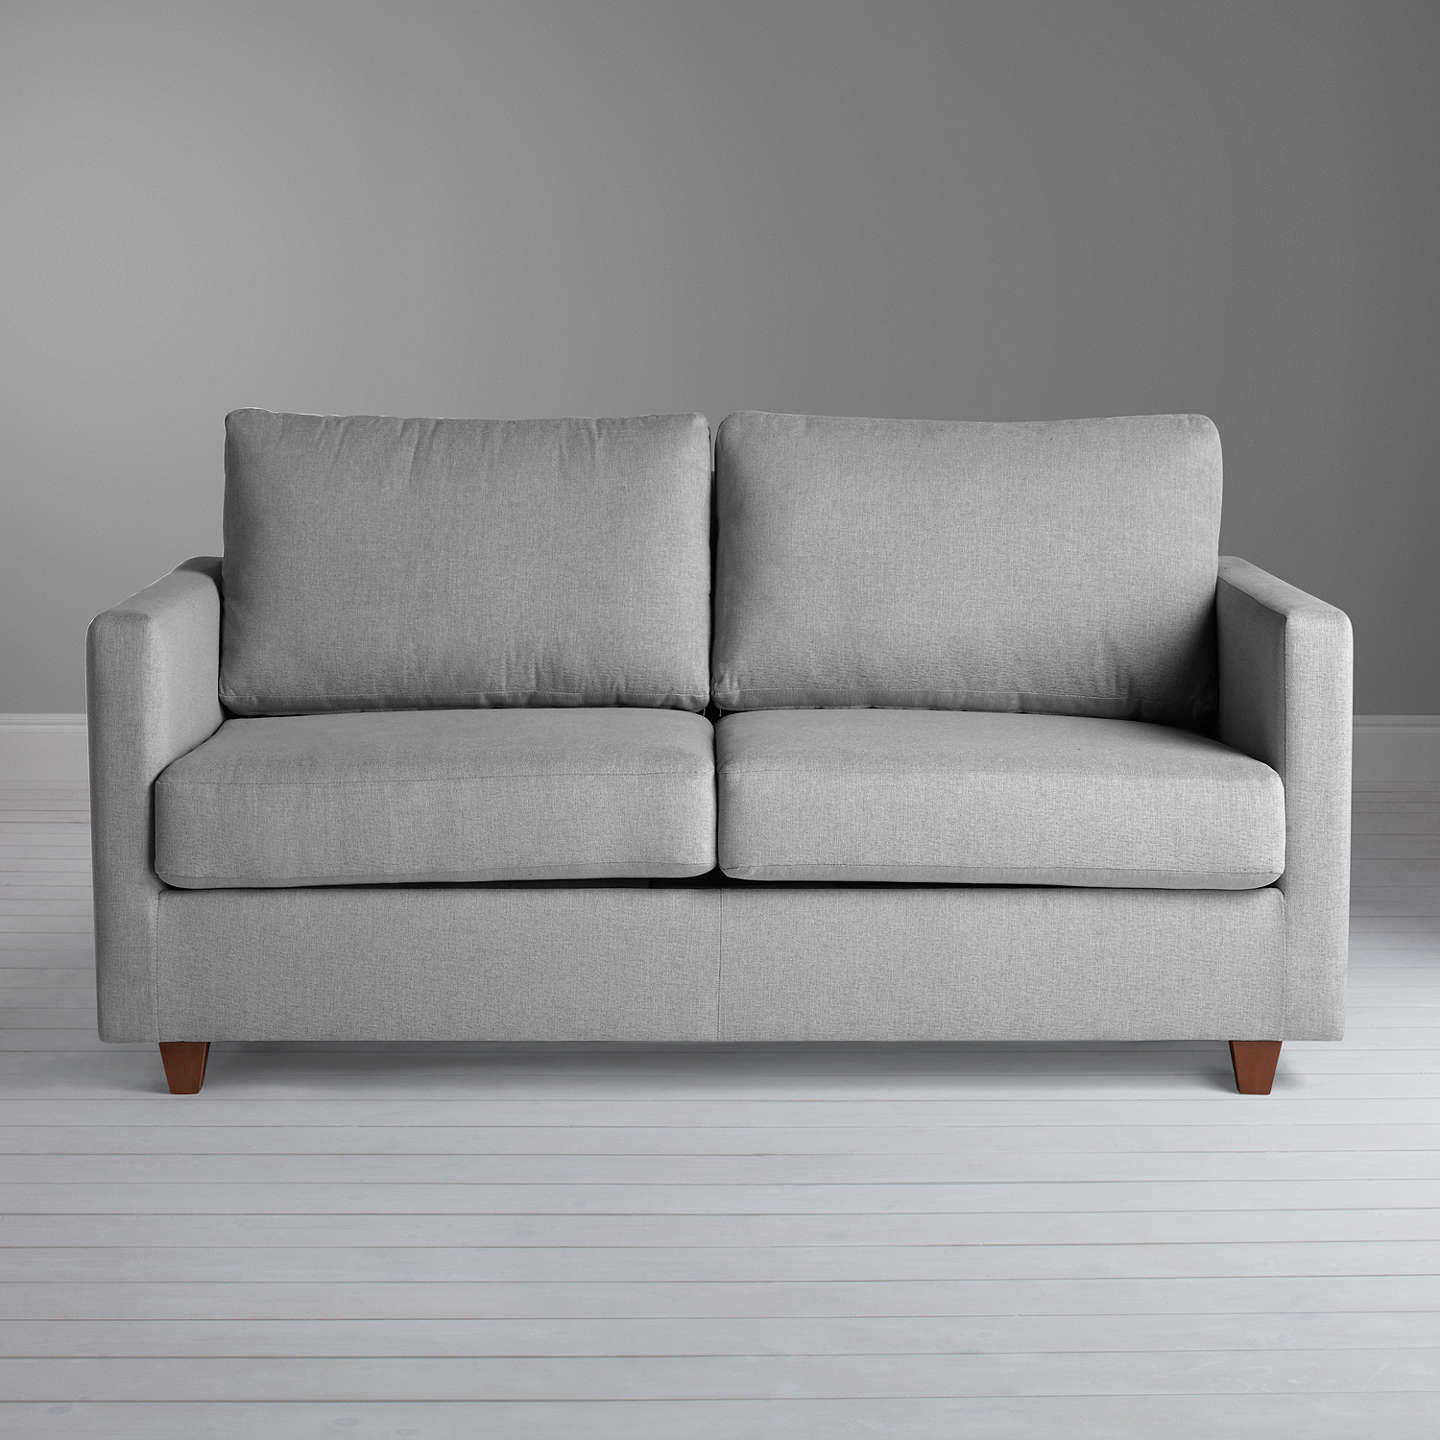 ... buyjohn lewis barlow 2 seater small sofa bed with pocket sprung OFJVEQP